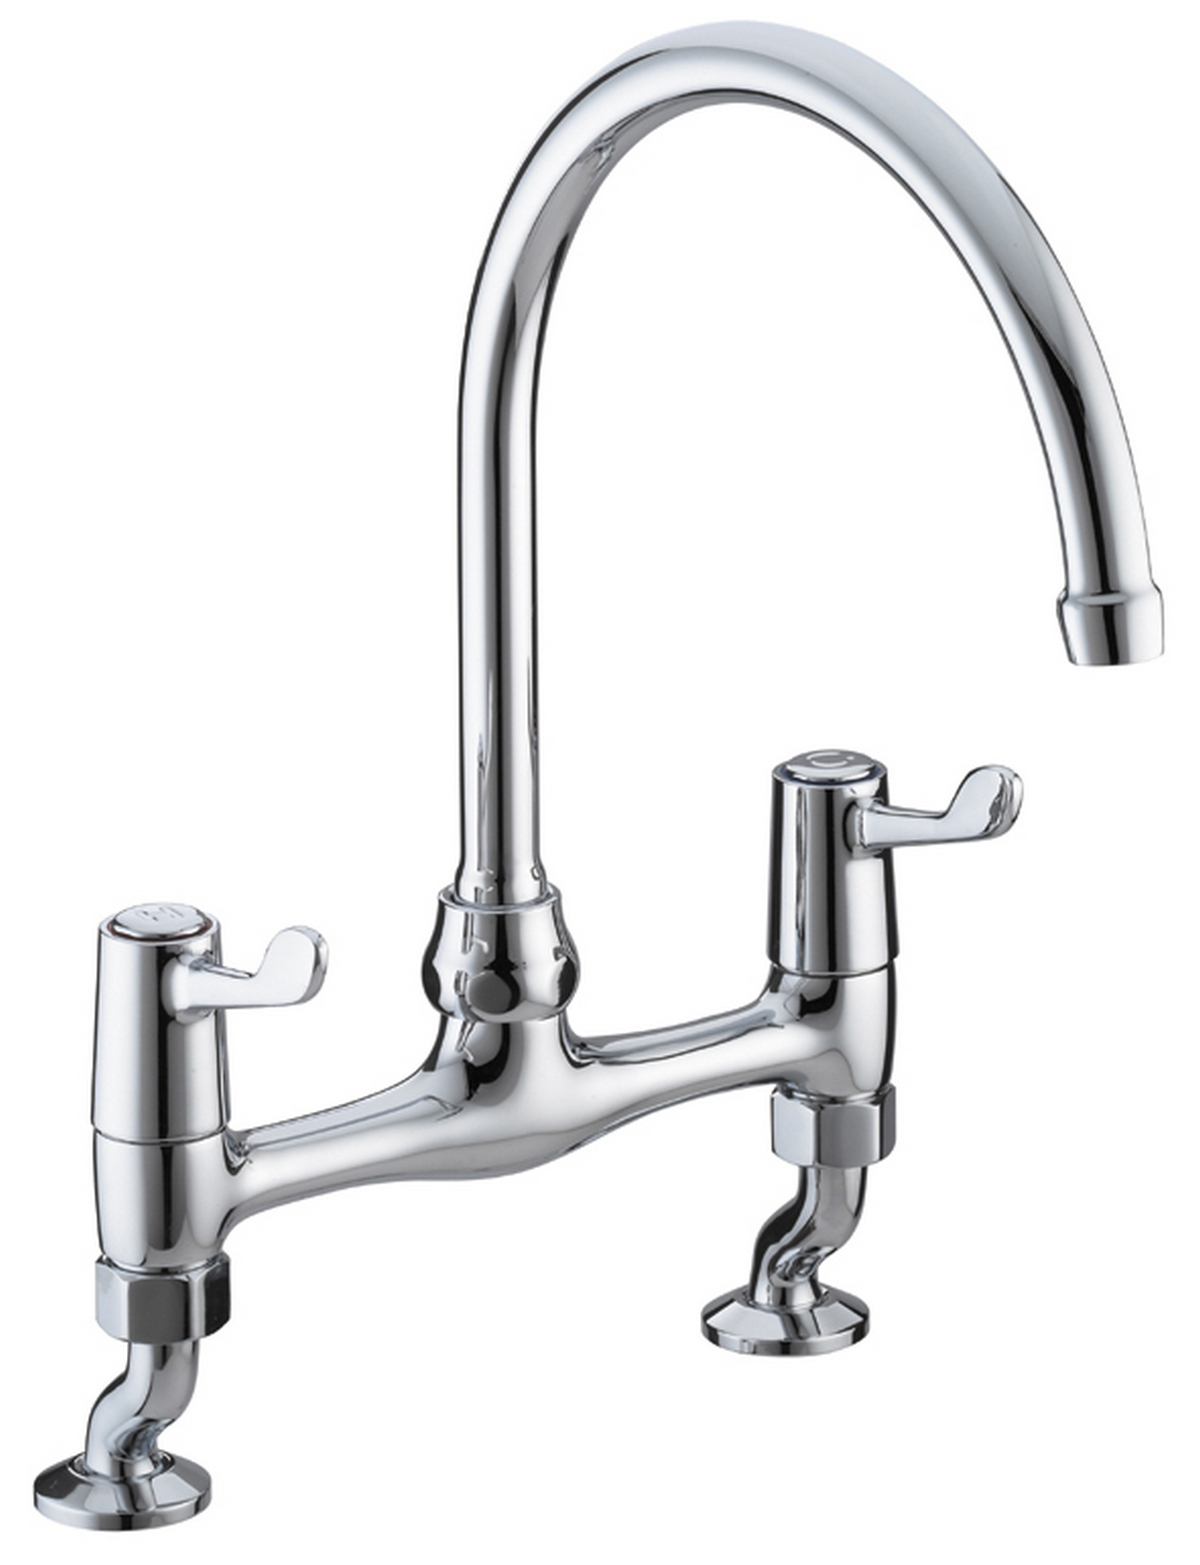 Bristan | Value | VAL BRDSM C 6 CD | Kitchen Sink Mixer